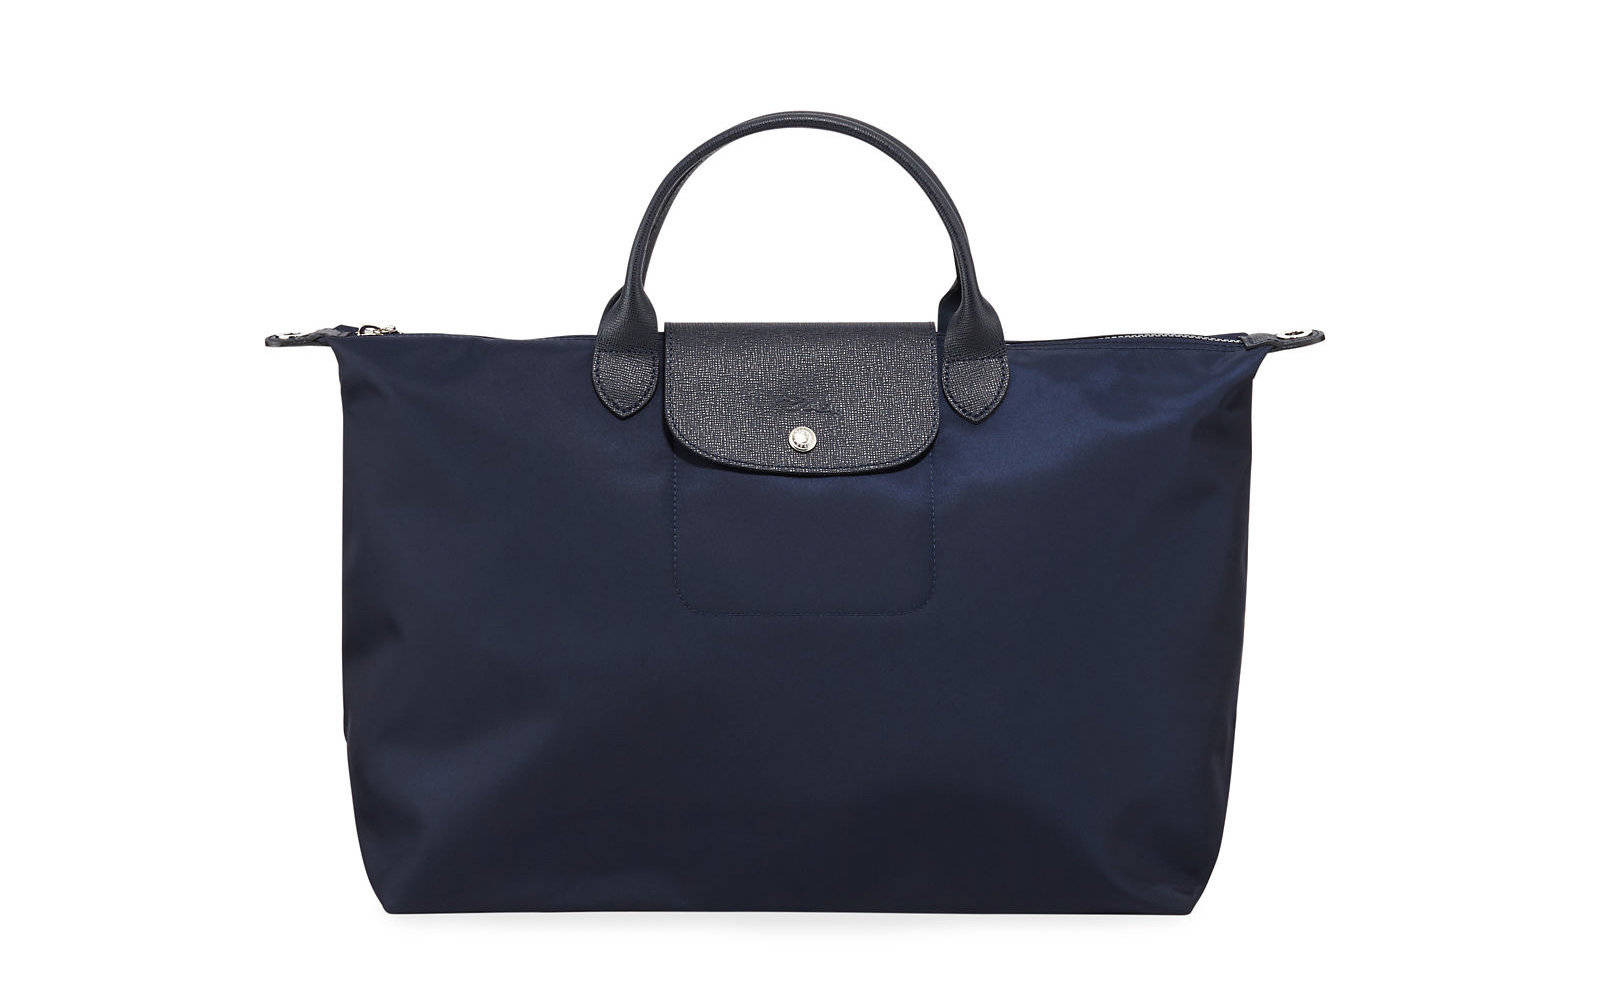 2275fae019 Longchamp Le Pliage Neo Large Nylon Tote Bag in Dark Blue. Longchamp Bags  on Sale. Courtesy of Neiman Marcus Last Call